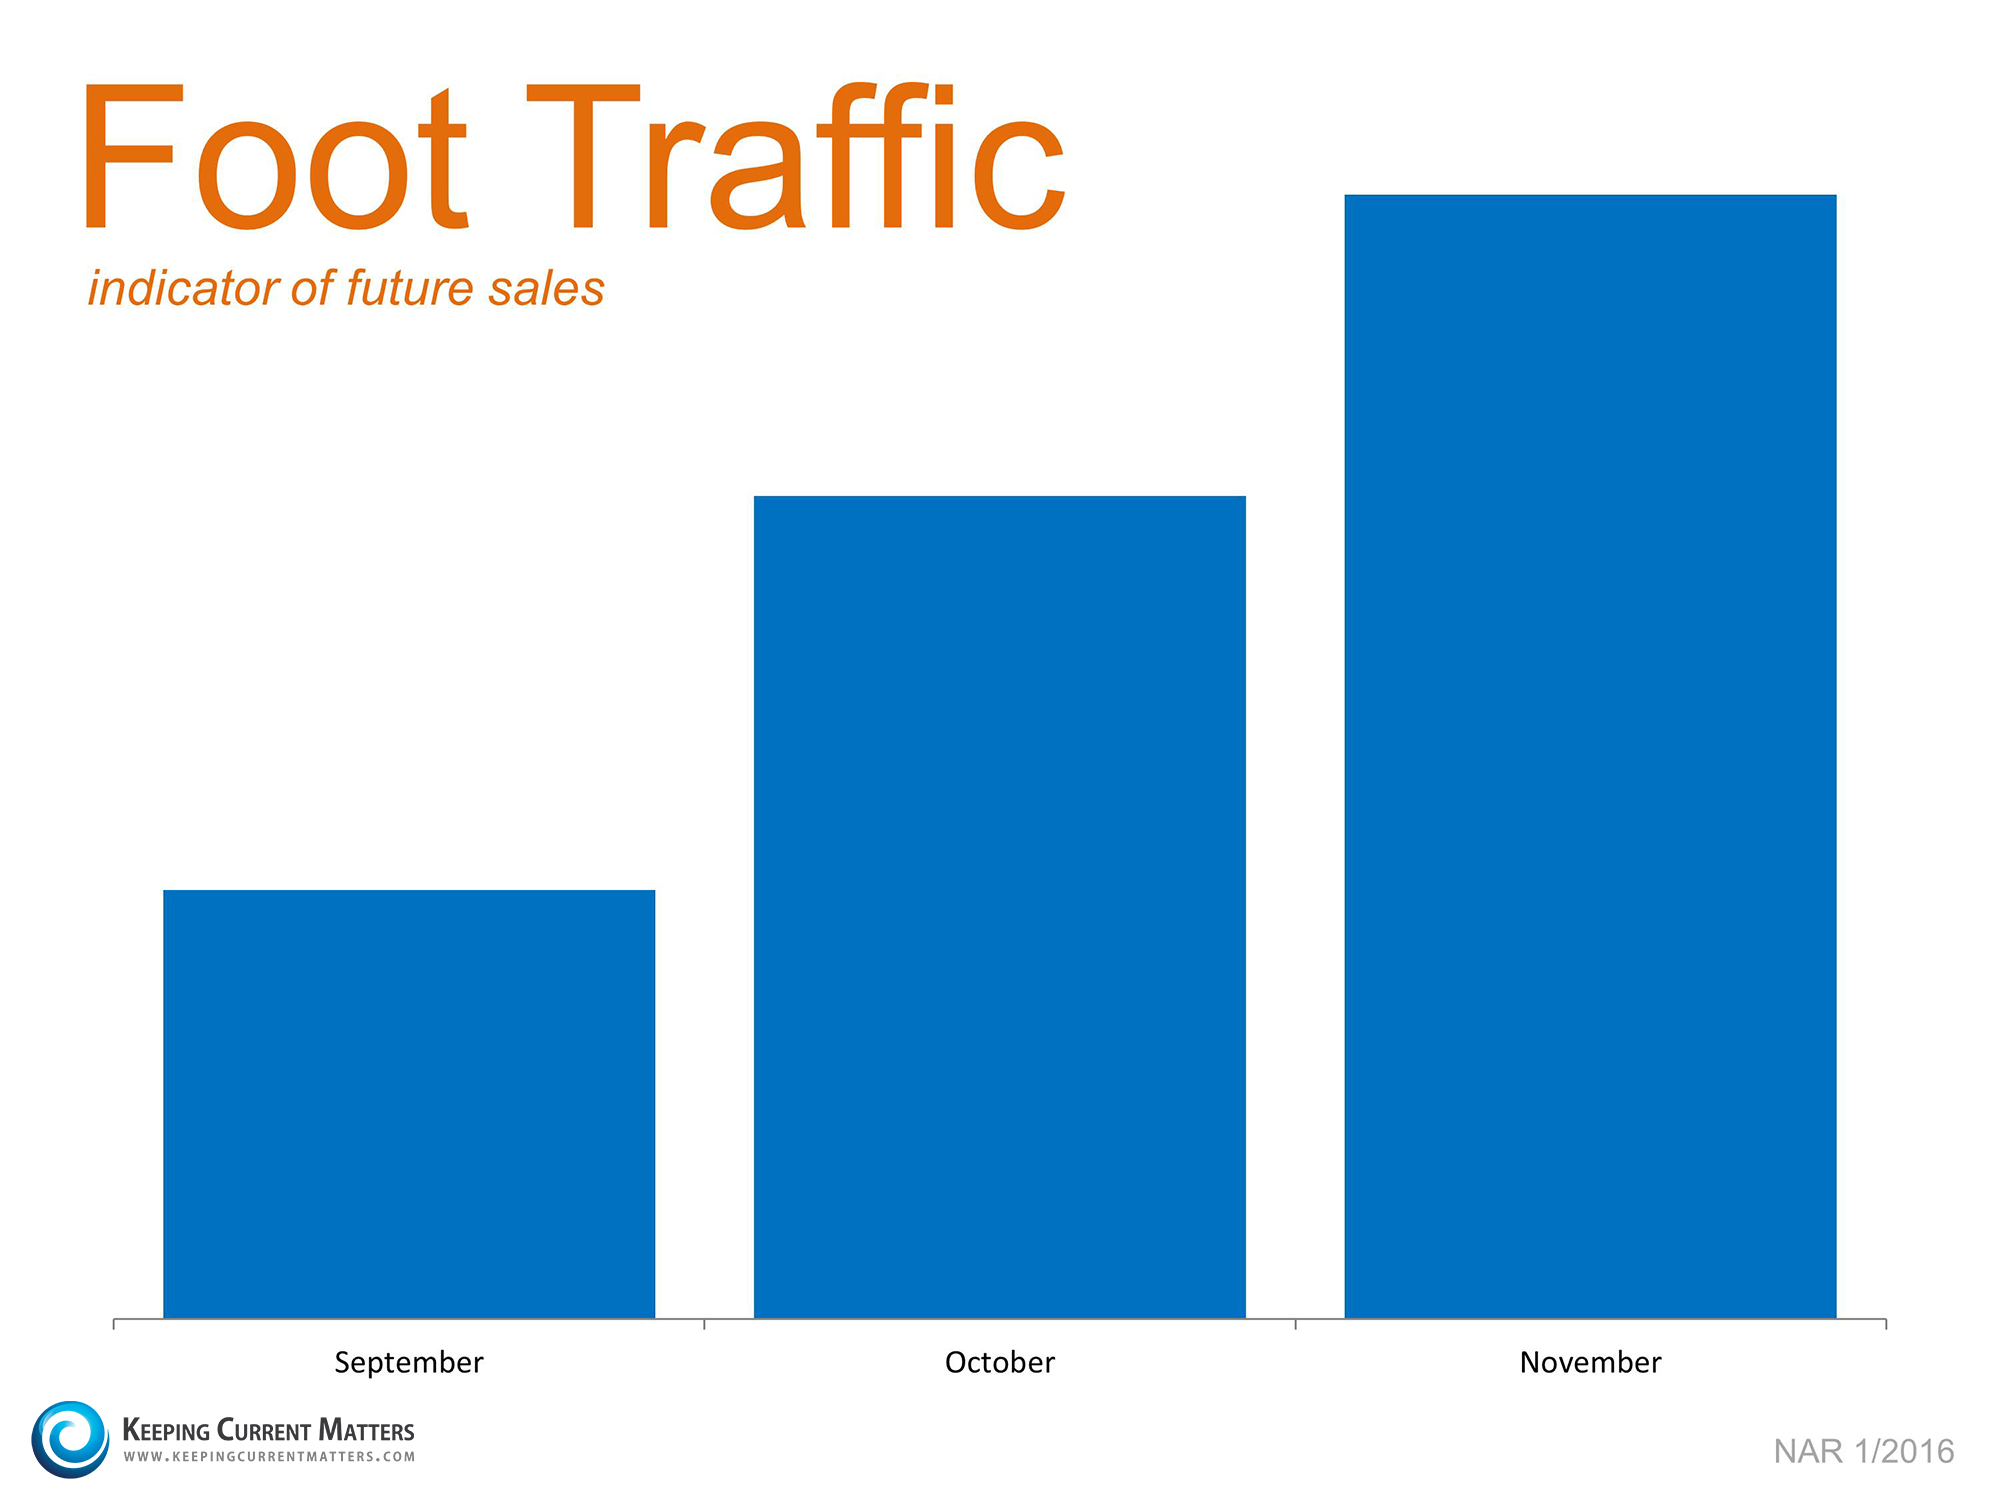 Foot Traffic Growing | Keeping Current Matters